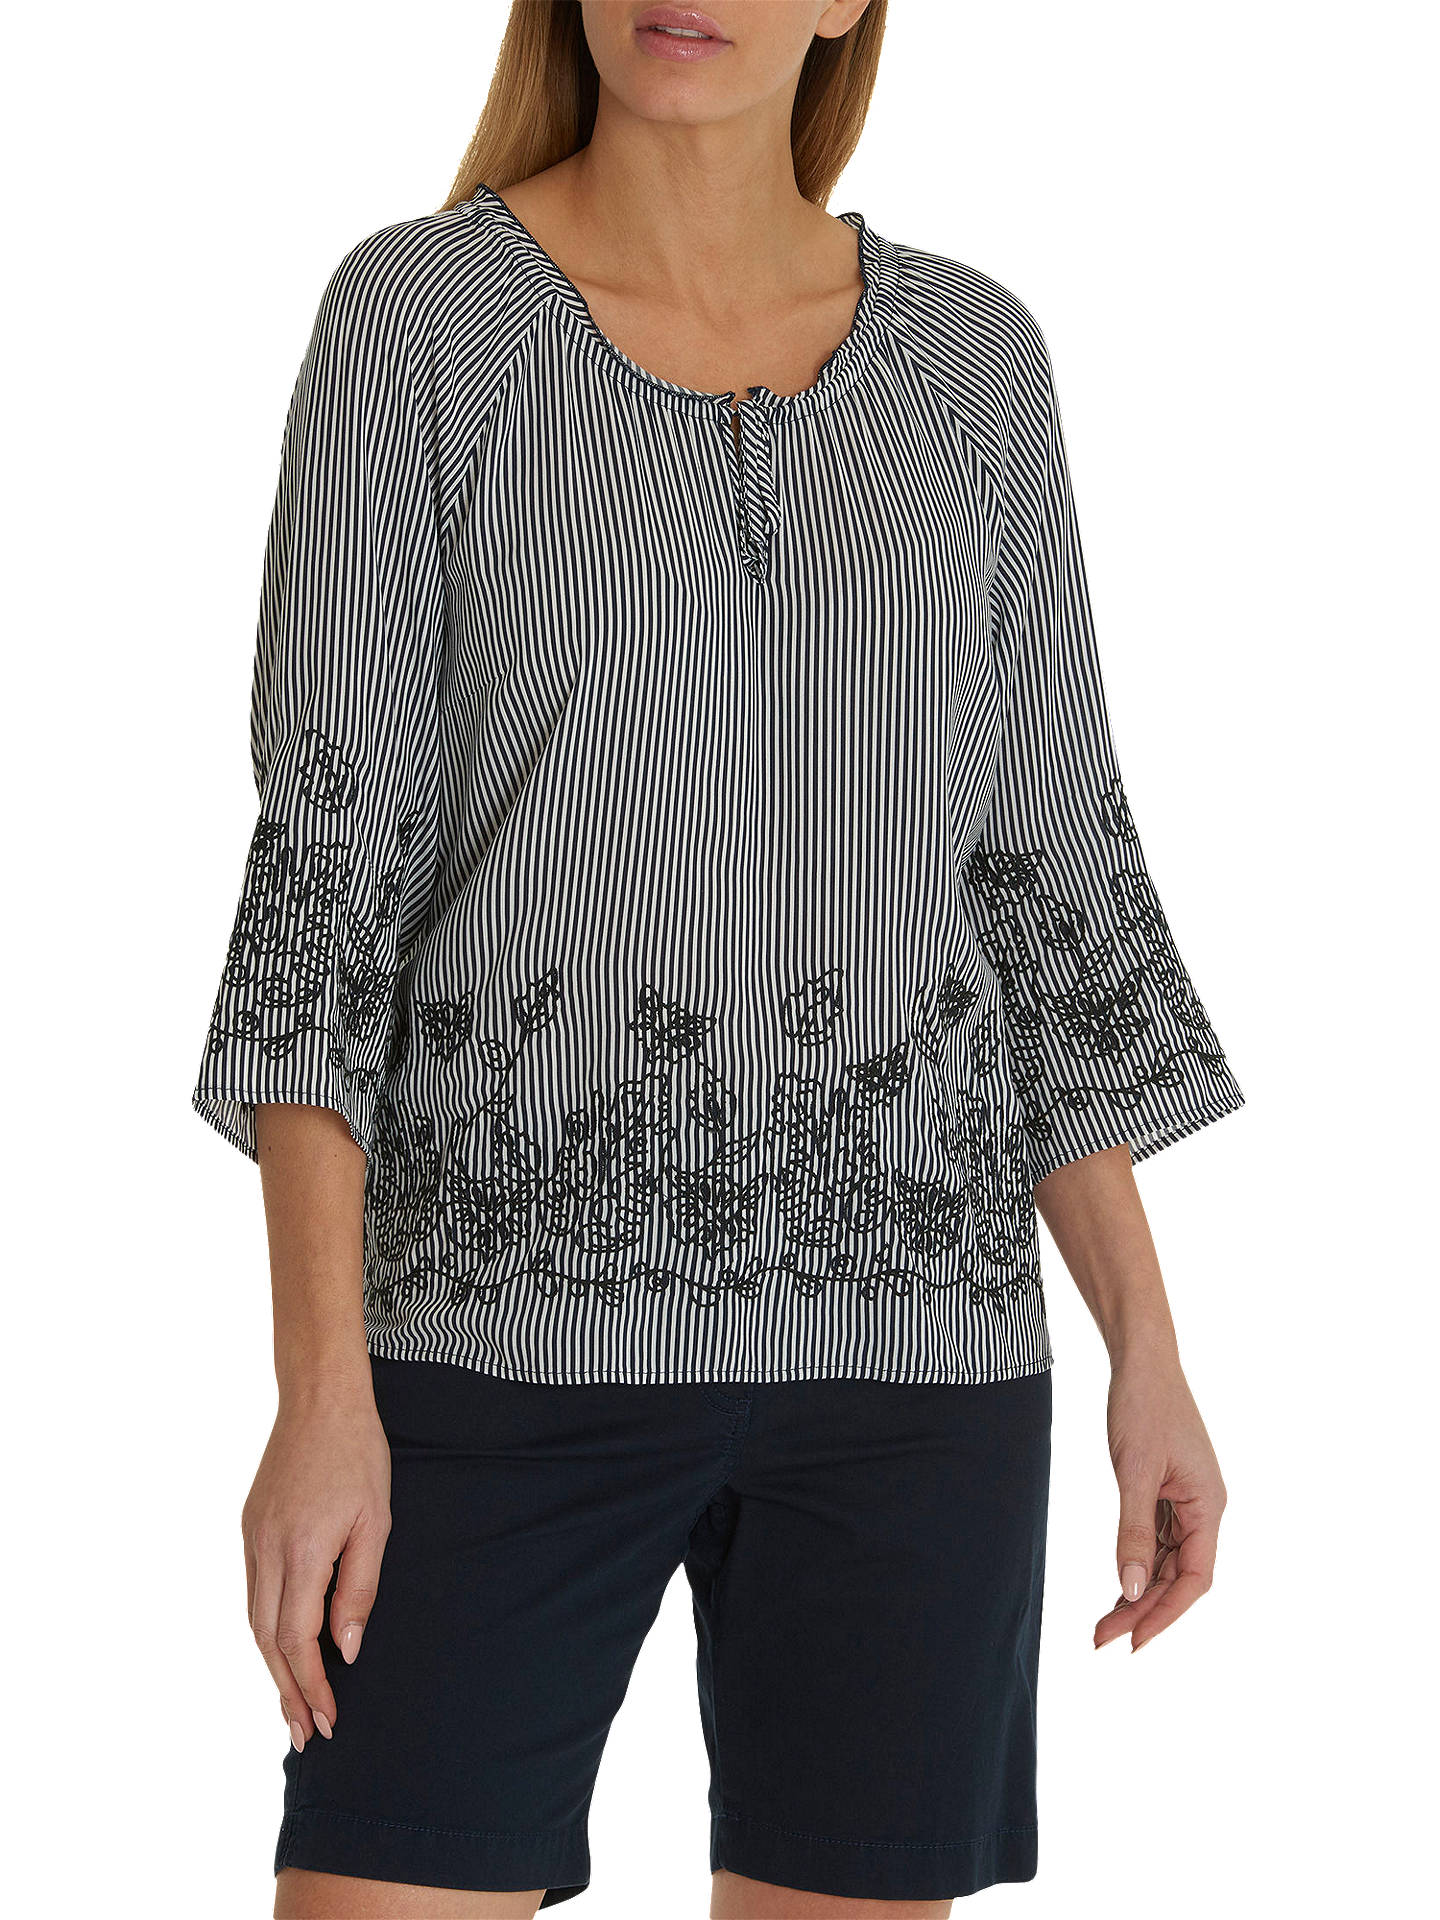 BuyBetty Barclay Embroidered Blouse, Blue/Cream, 10 Online at johnlewis.com